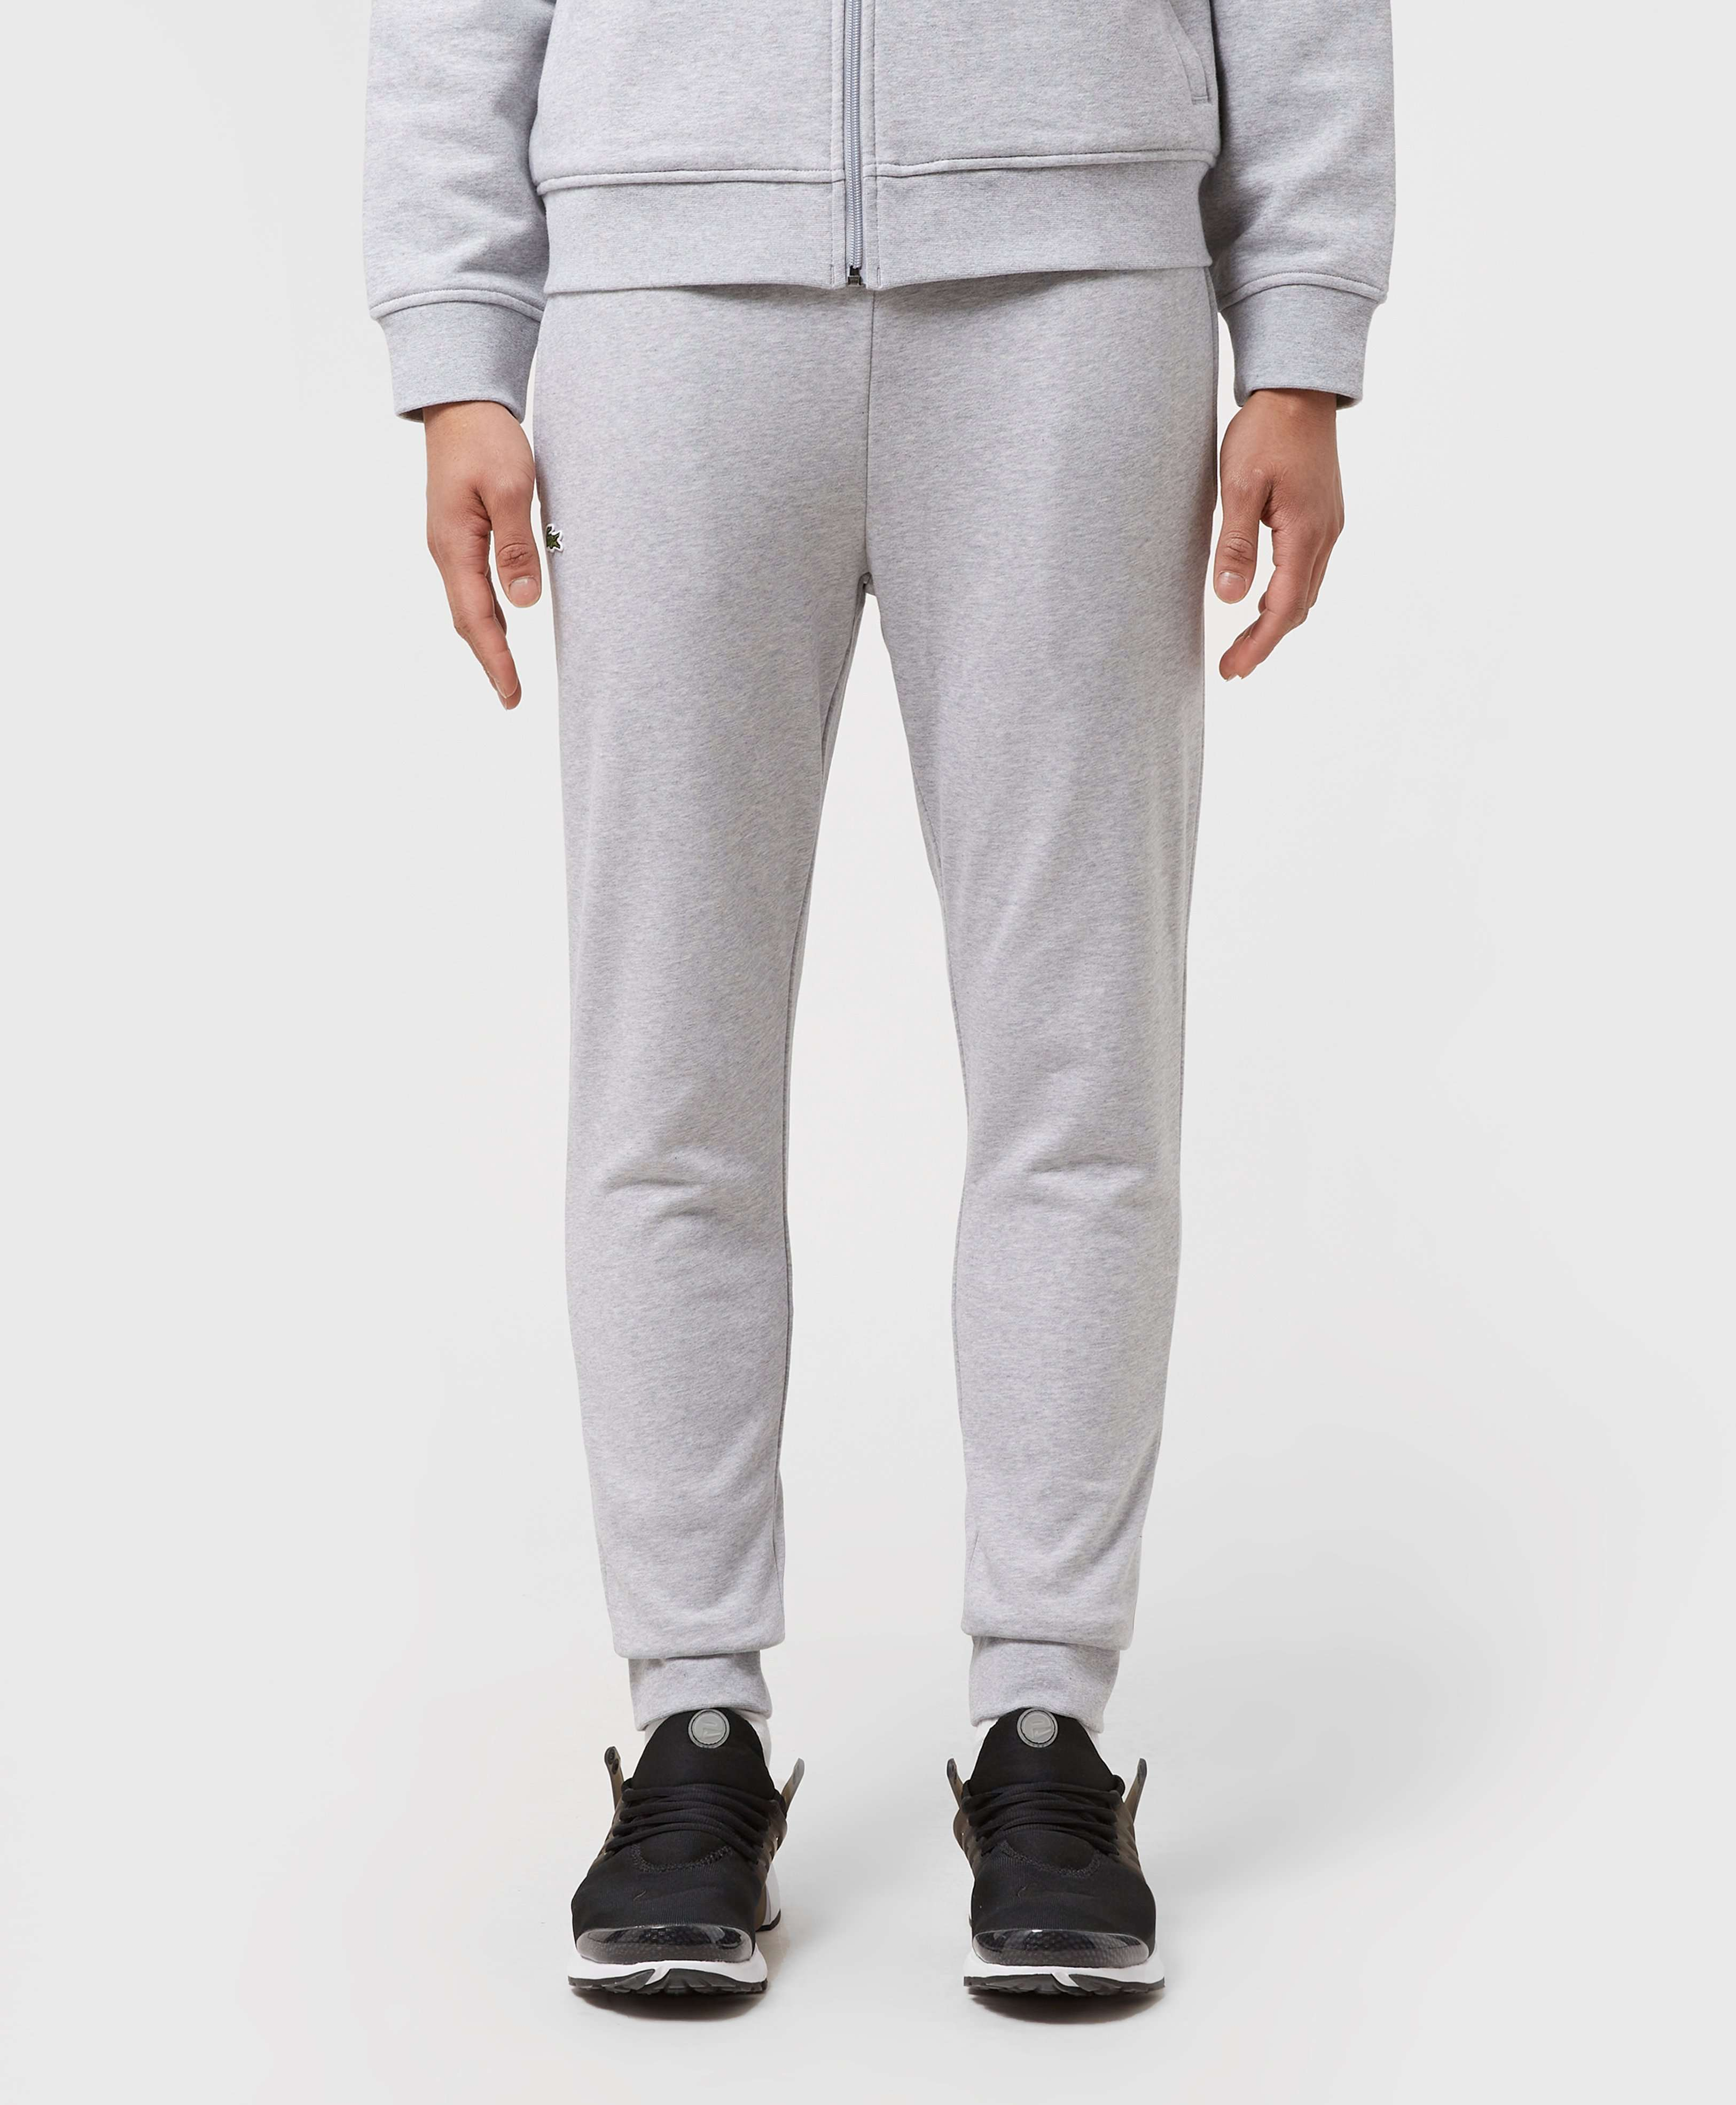 Lacoste Slim Cuffed Fleece Pants